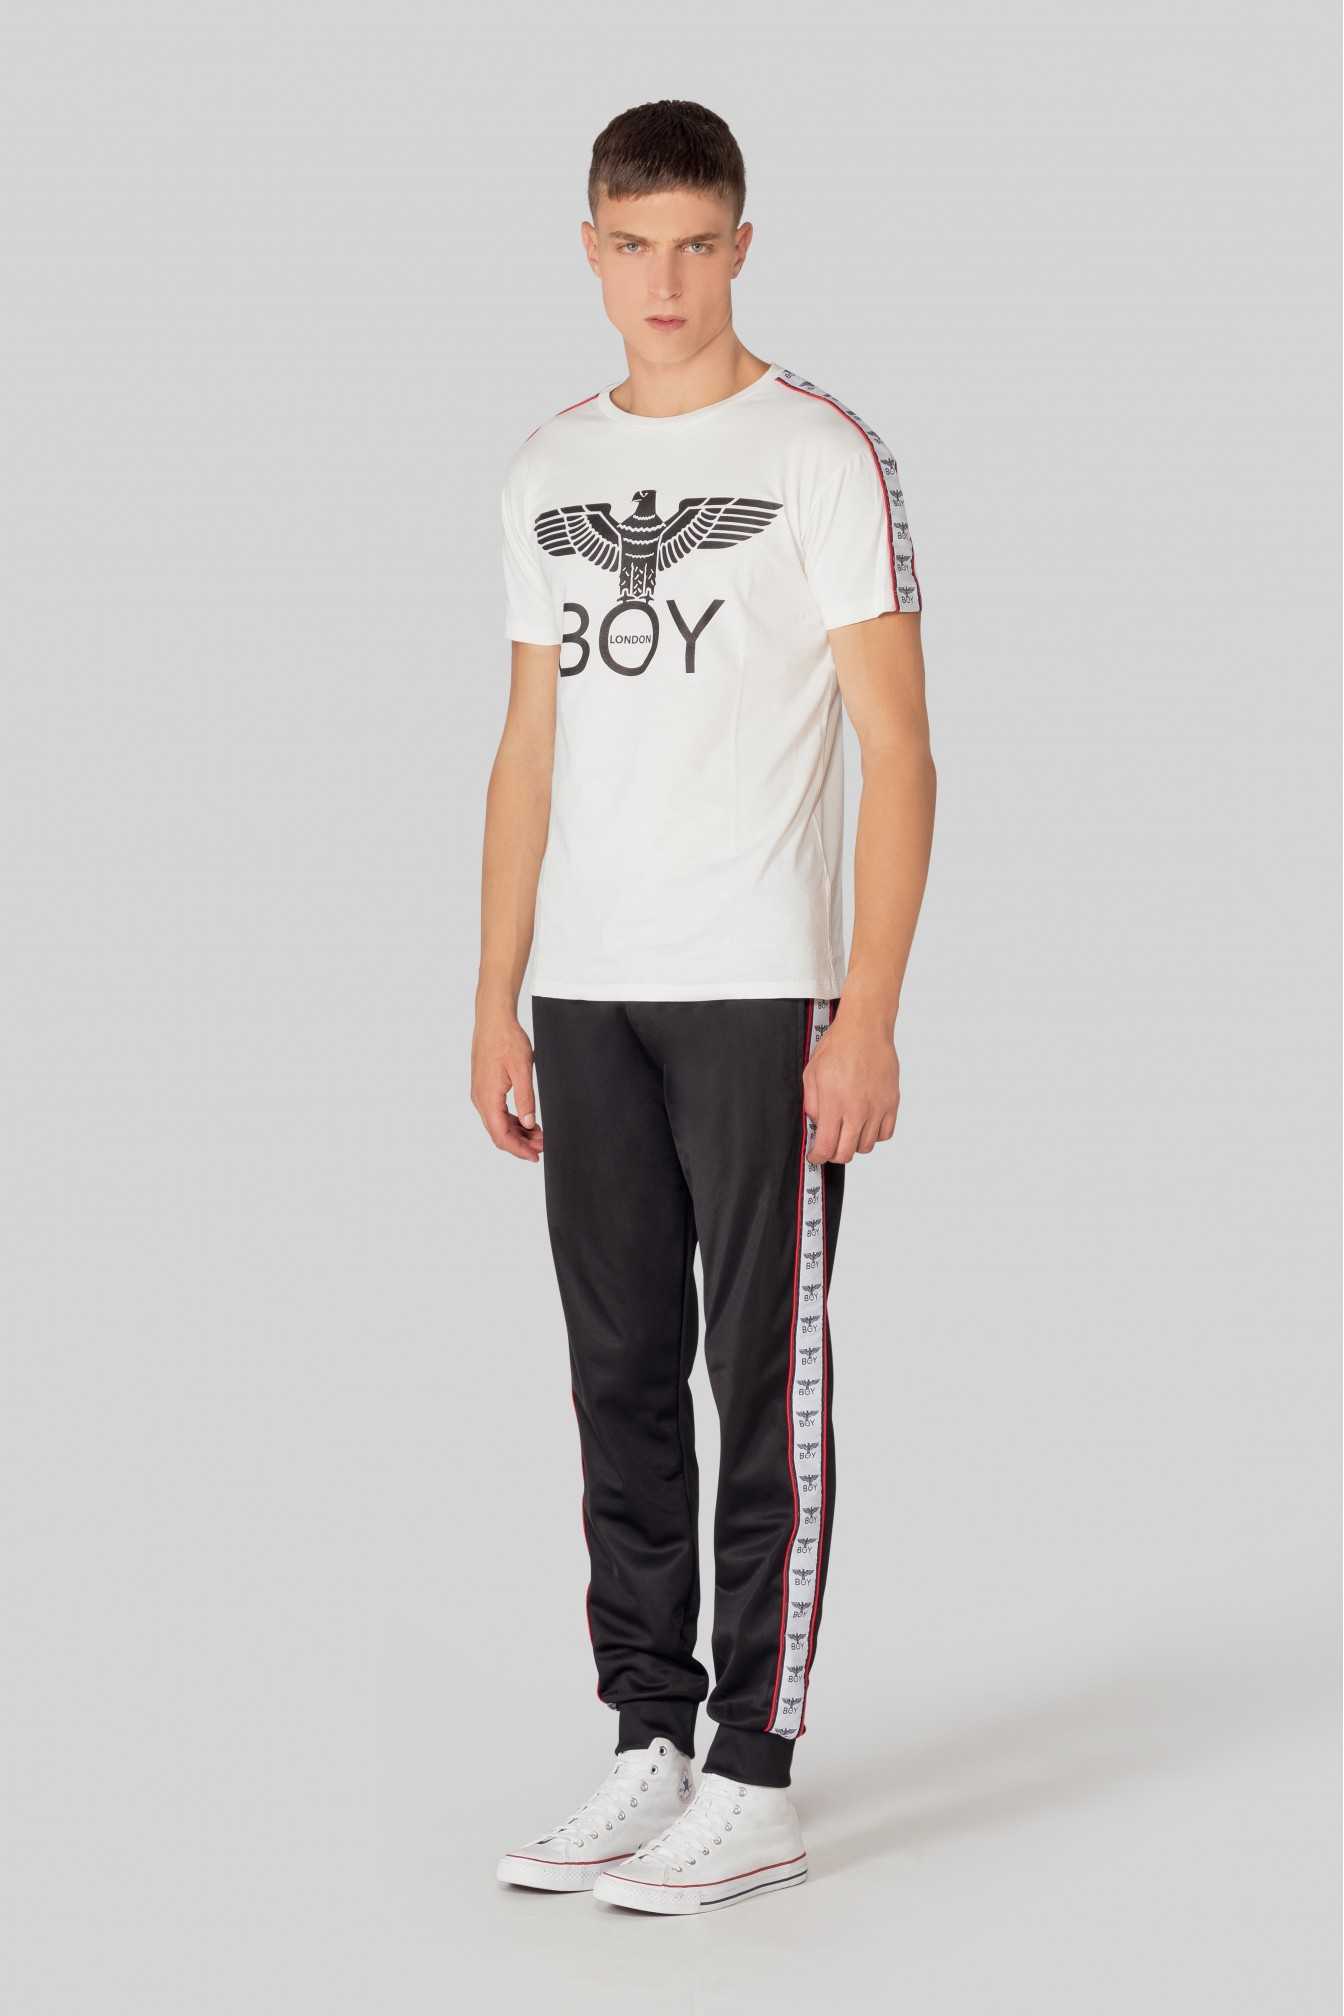 T-SHIRT - BLU6719 - BOY LONDON